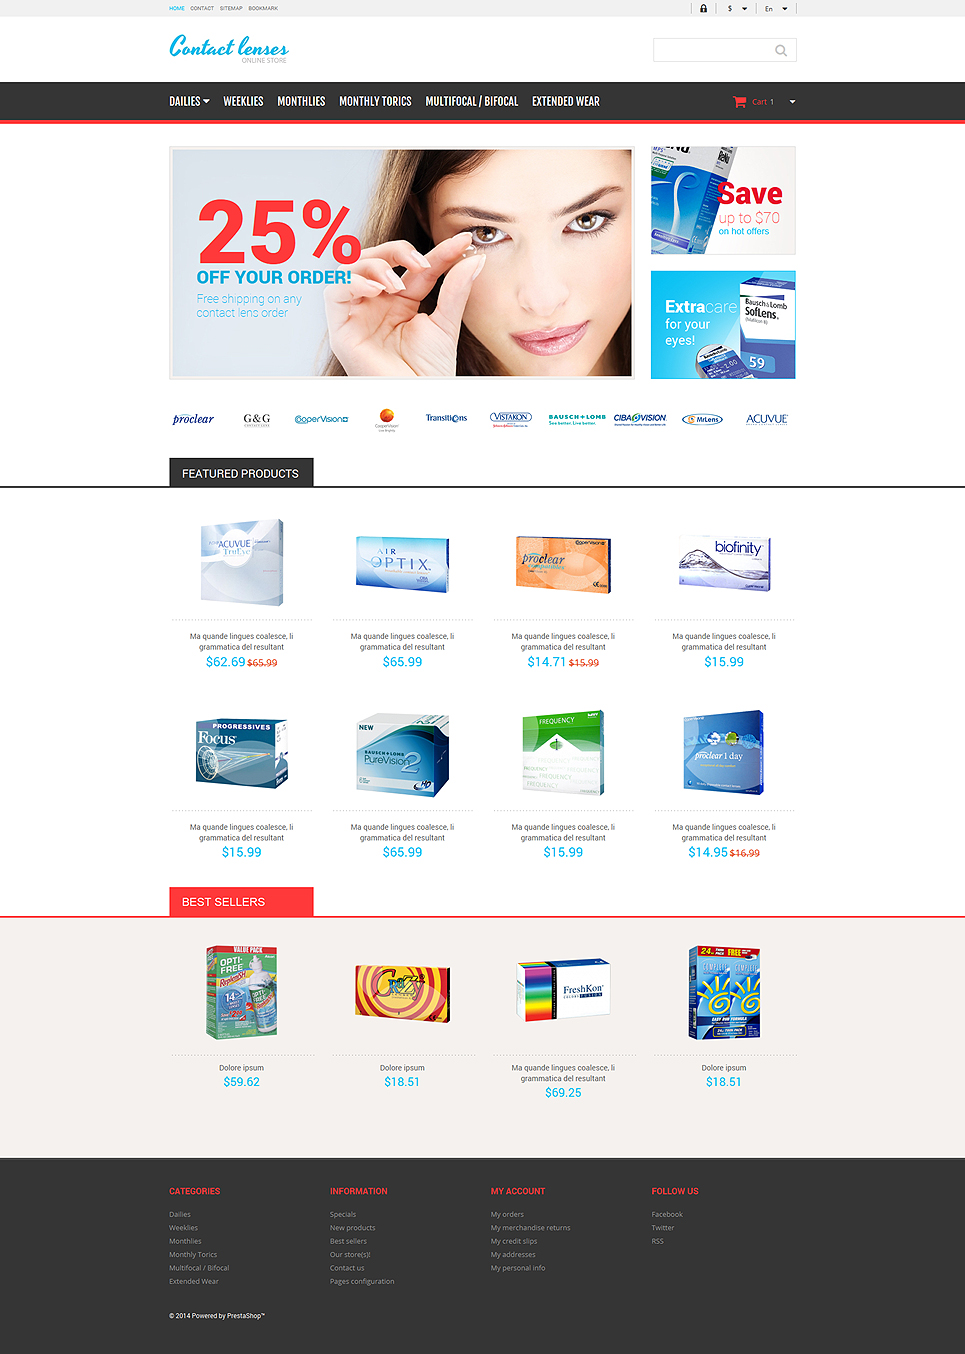 Contact Lenses Supplier